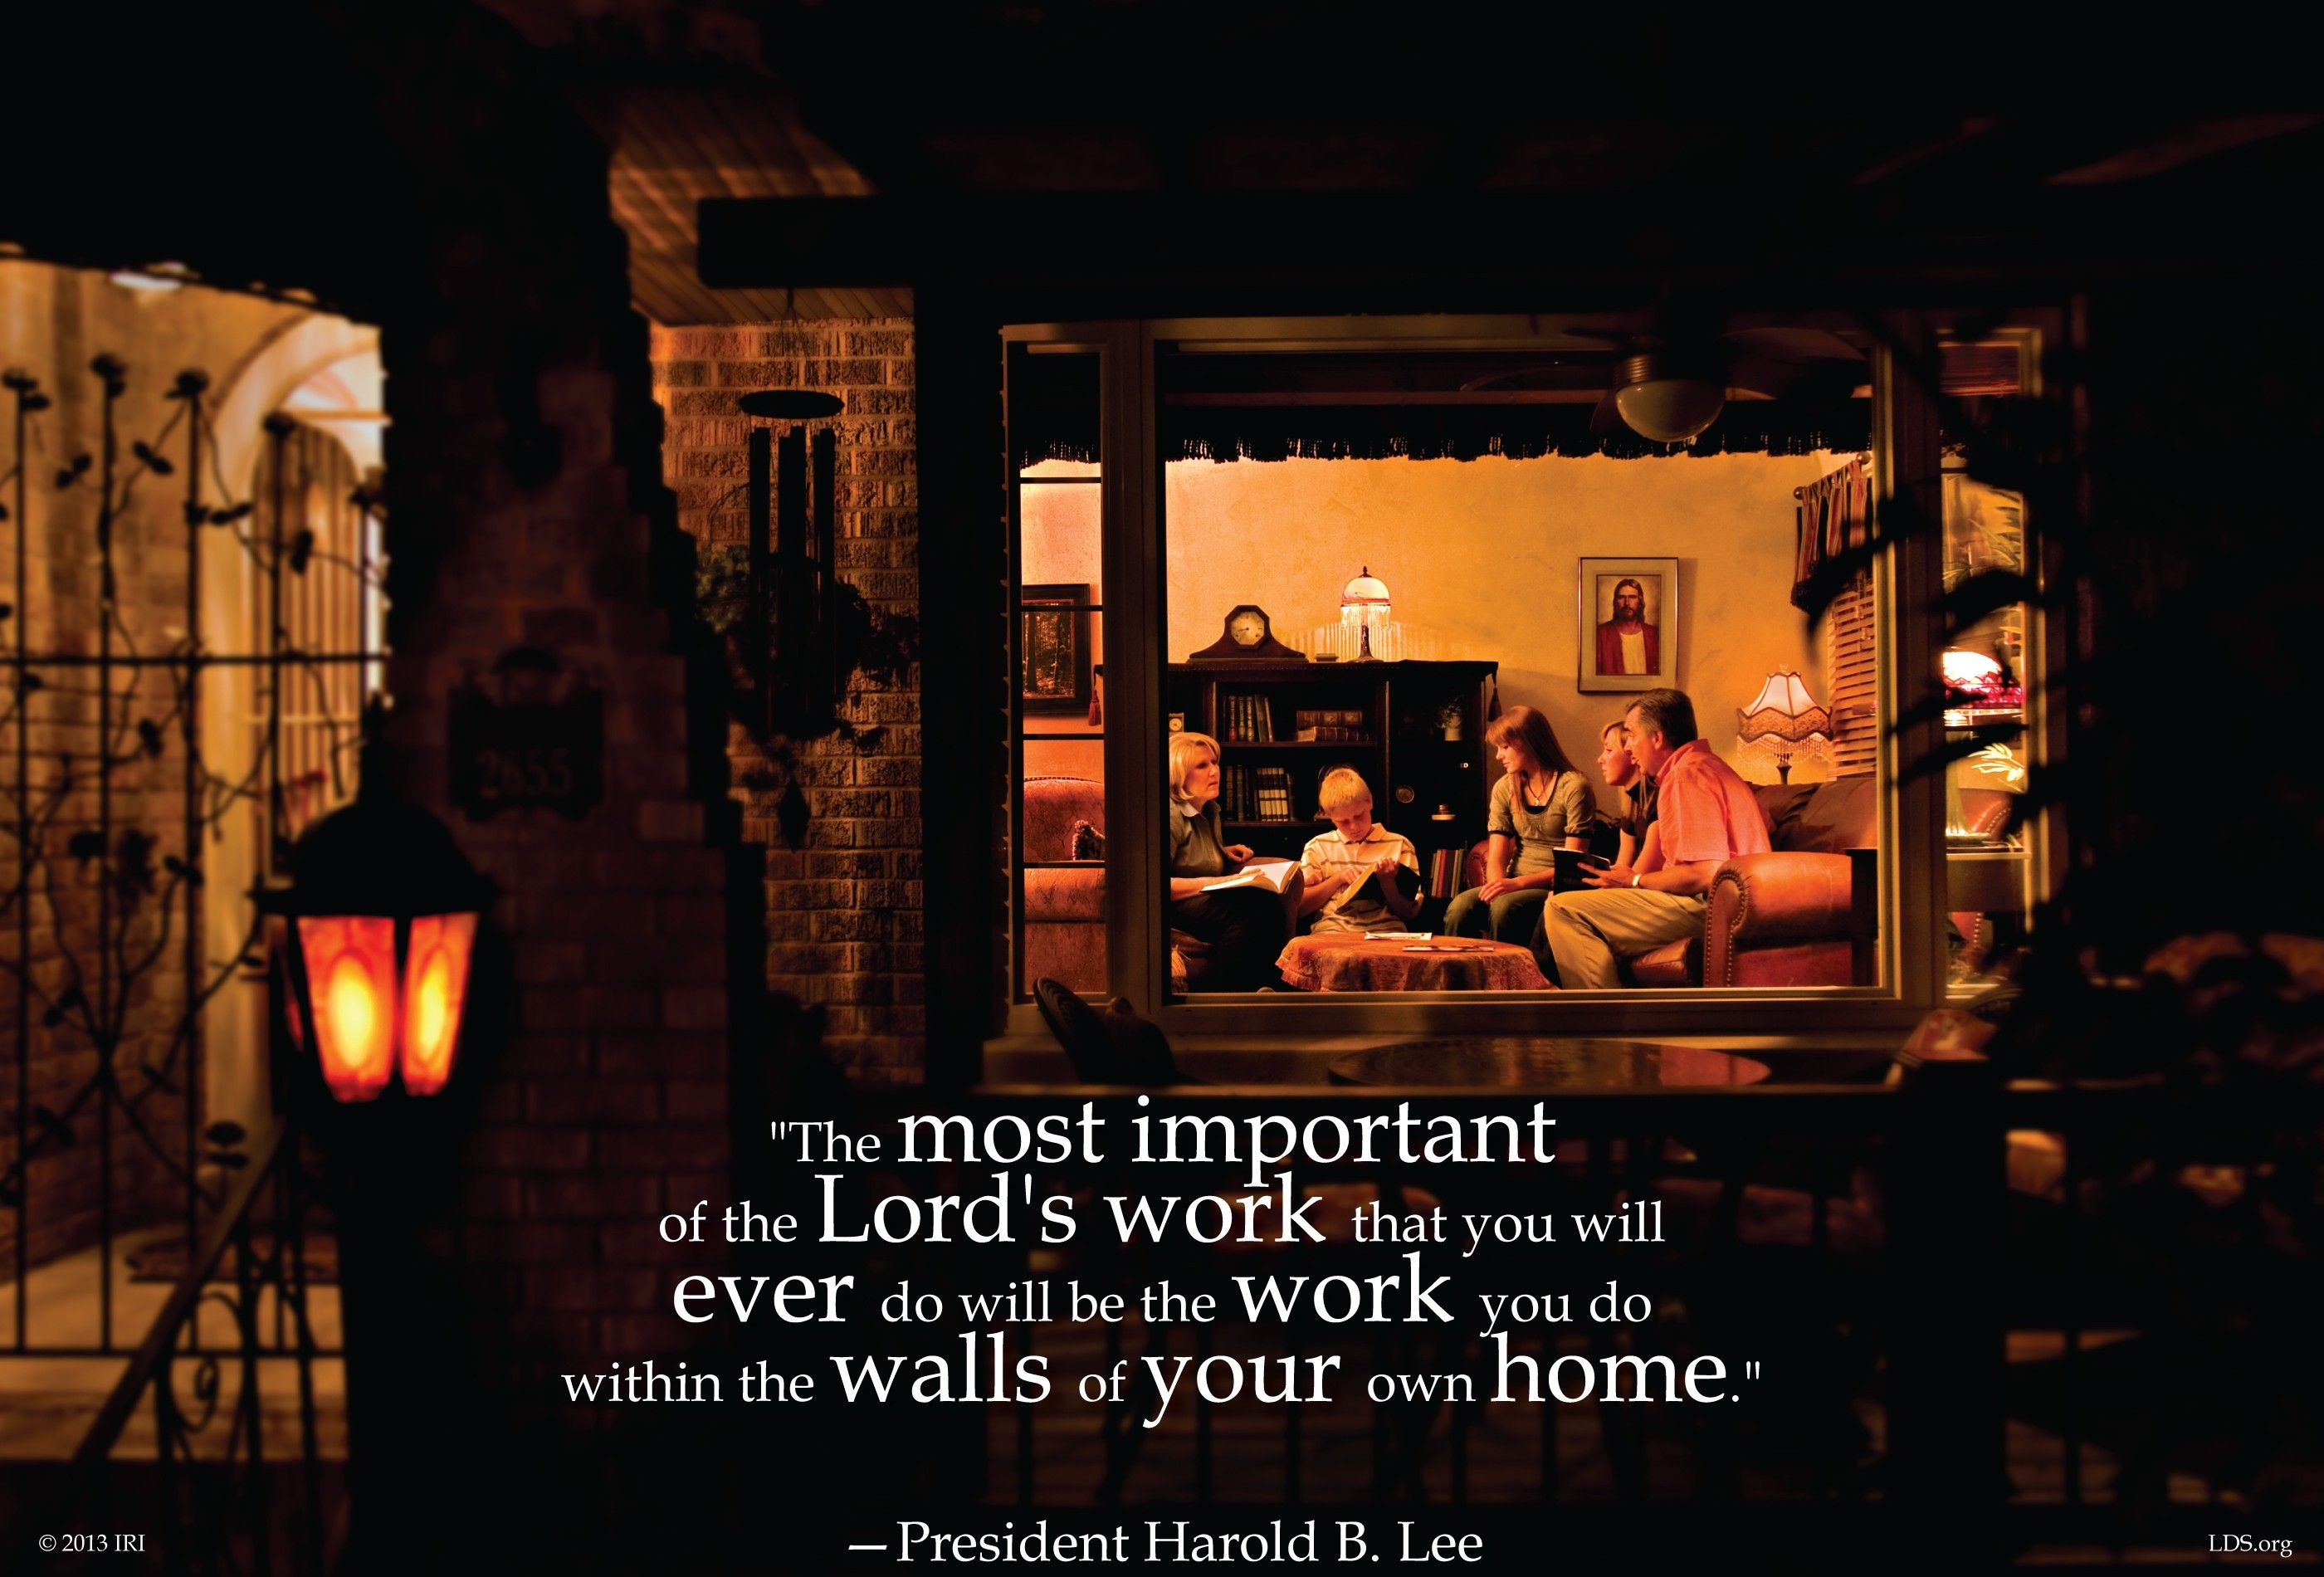 """The most important of the Lord's work that you will ever do will be the work you do within the walls of your own home.""—President Harold B. Lee, Teachings of Presidents of the Church: Harold B. Lee (2000), 134"